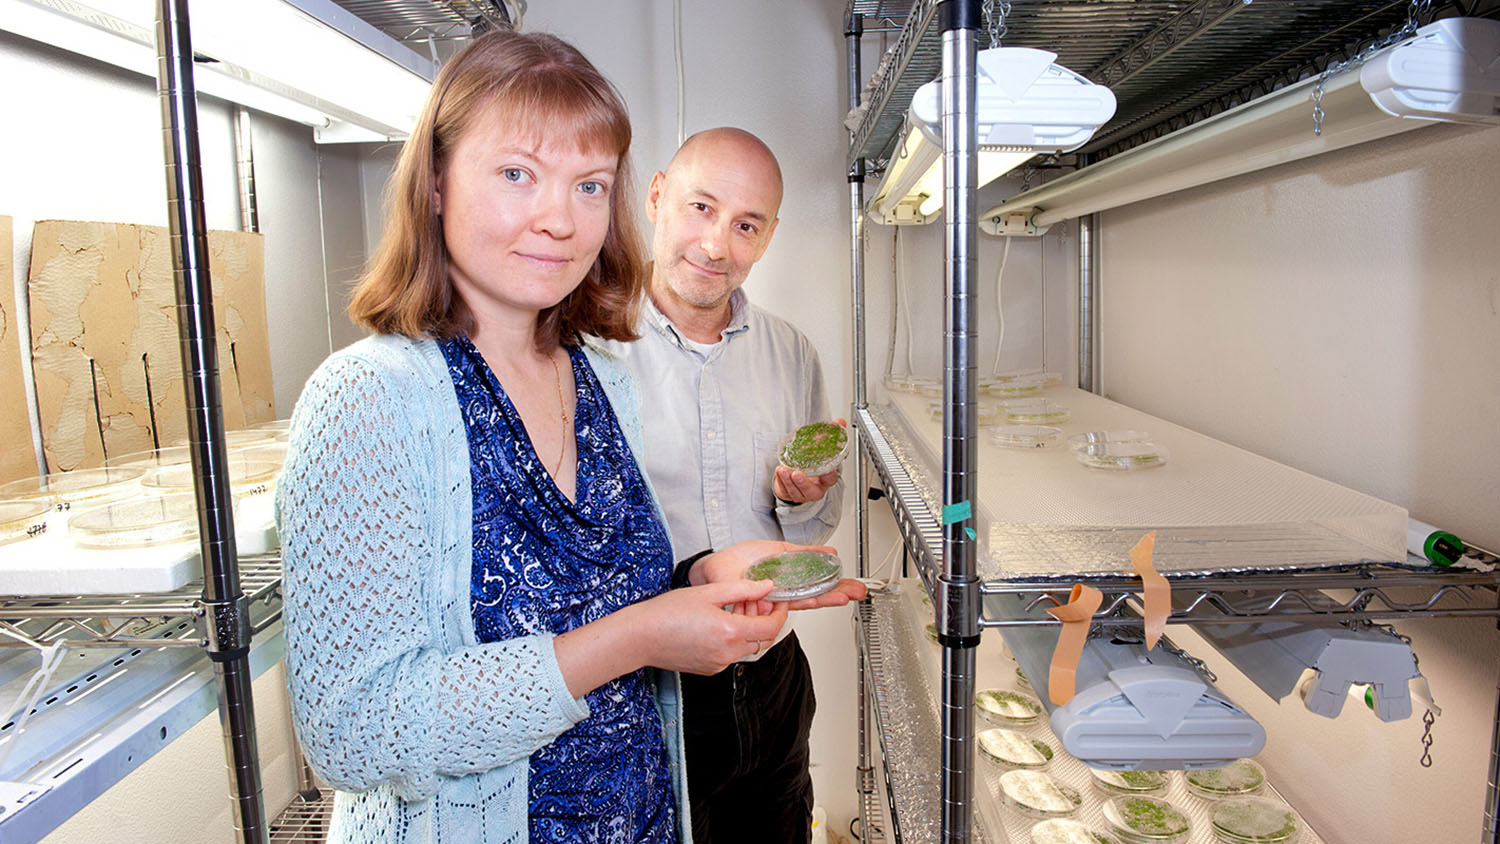 Anna Stepanova and Jose Alonso in a room for growing plants.